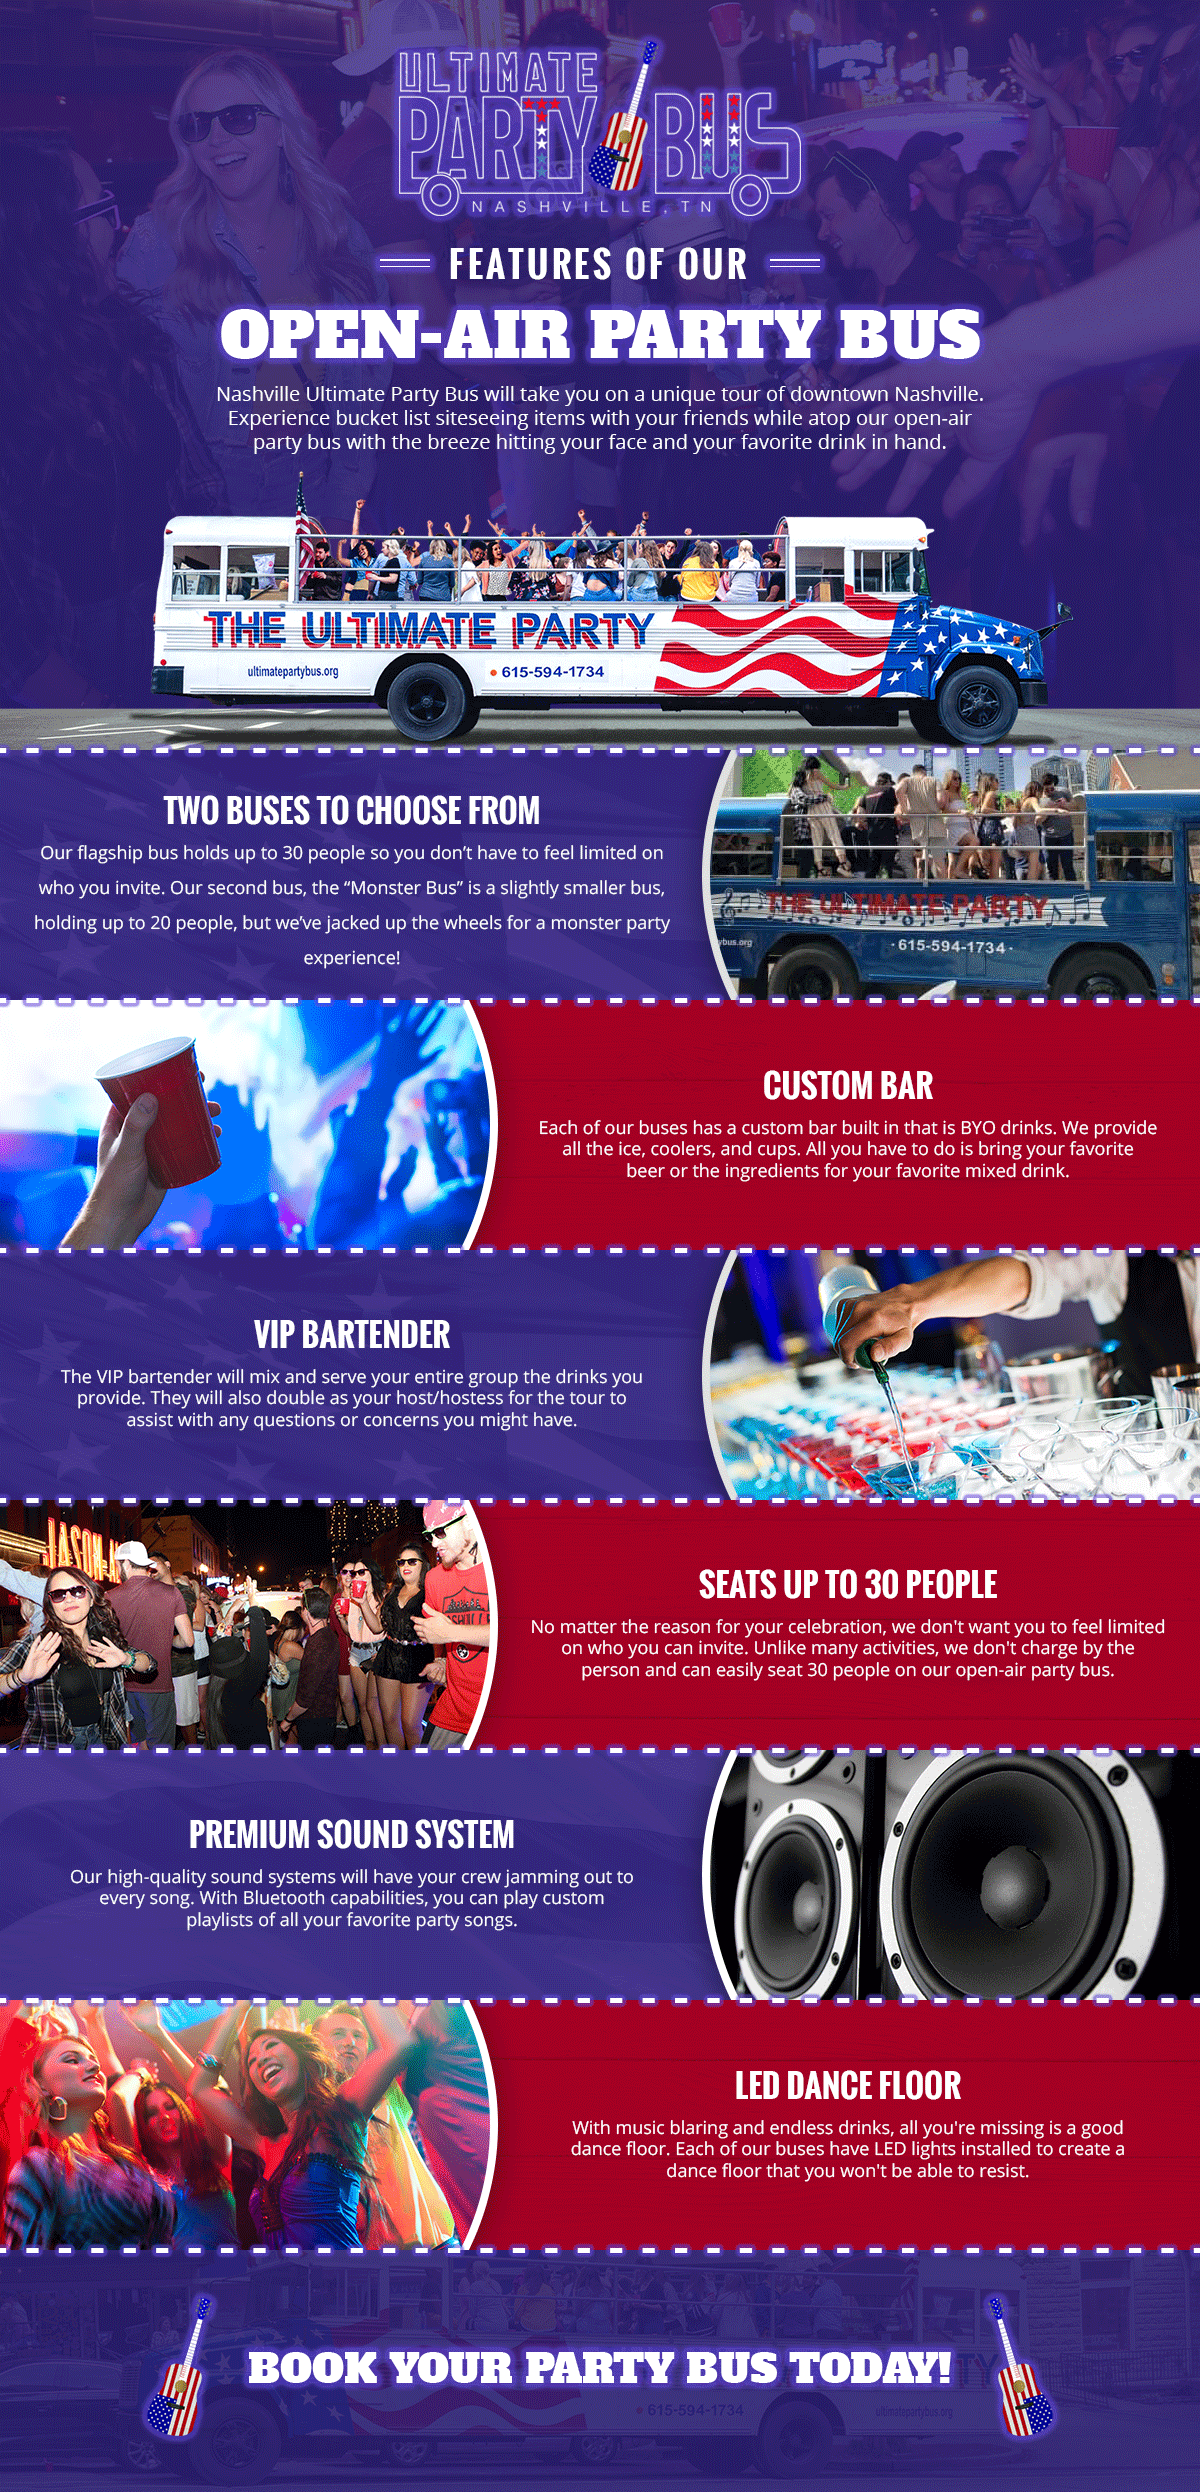 Features Of Our Open Air Party Bus | Ultimate Party Bus | Nashville, TN